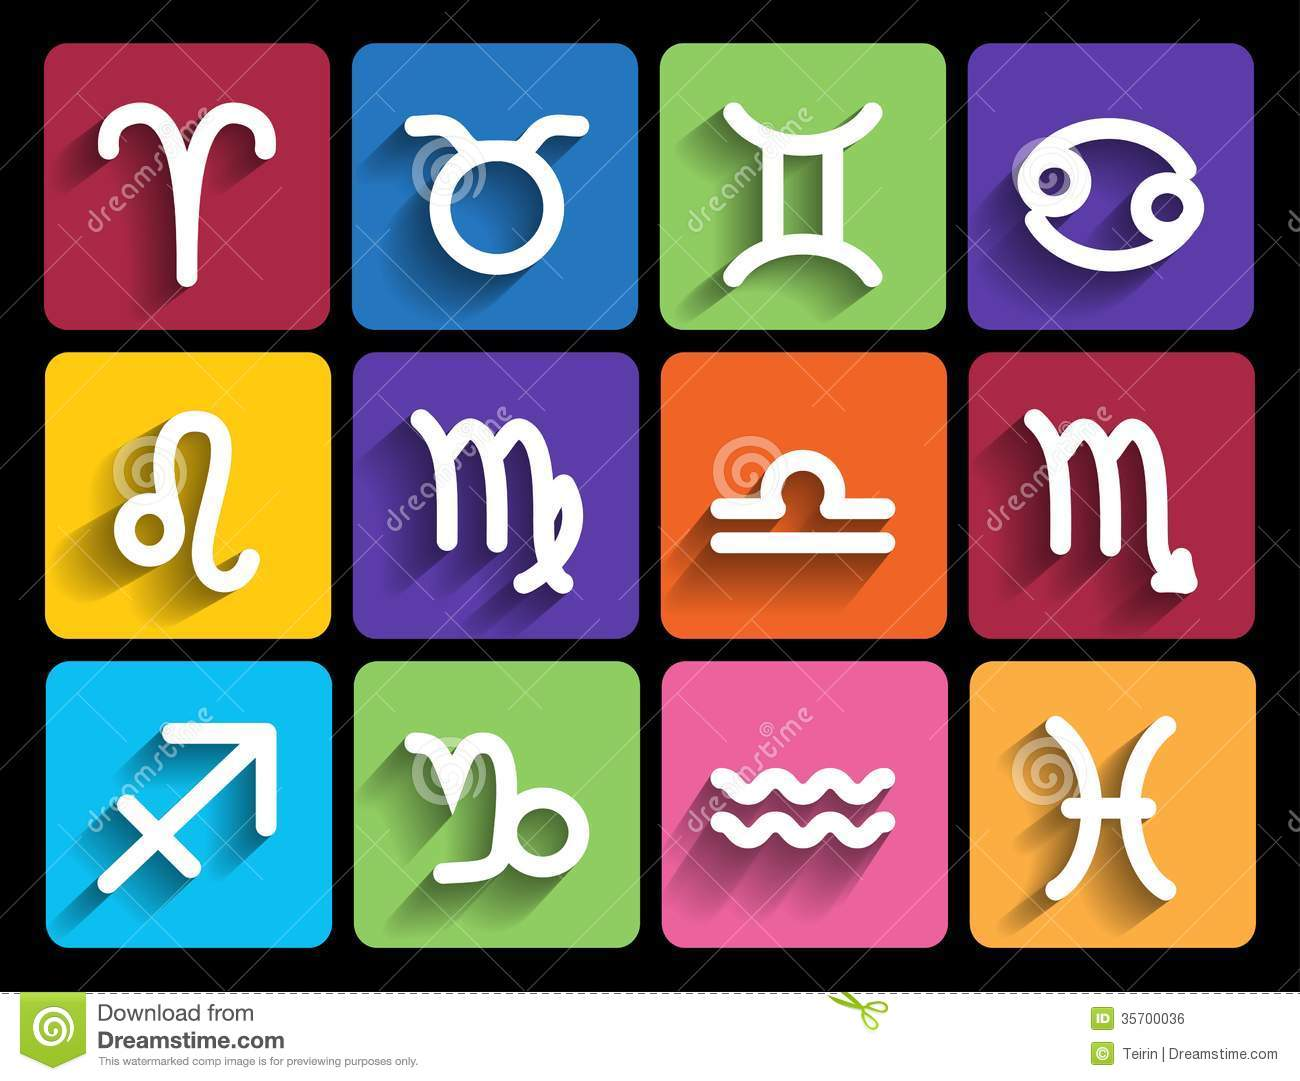 This is a graphic of Divine Free Signs Images